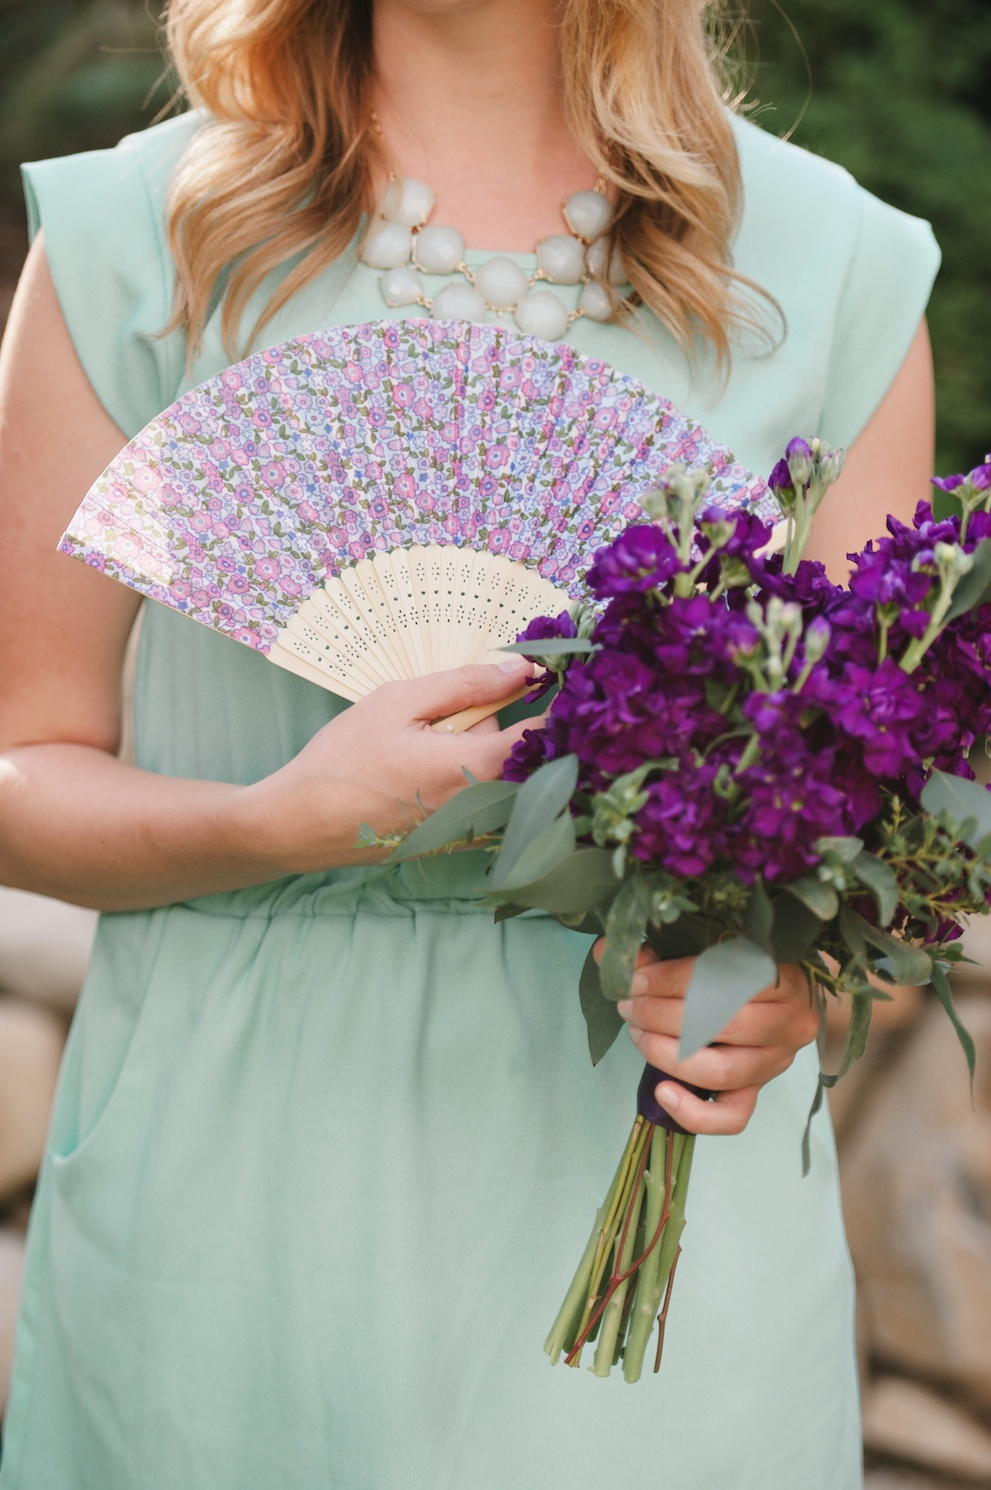 purple stock flower wedding bouquet Sundance resort sea foam purple wedding florist utah calie rose mikki platt photography